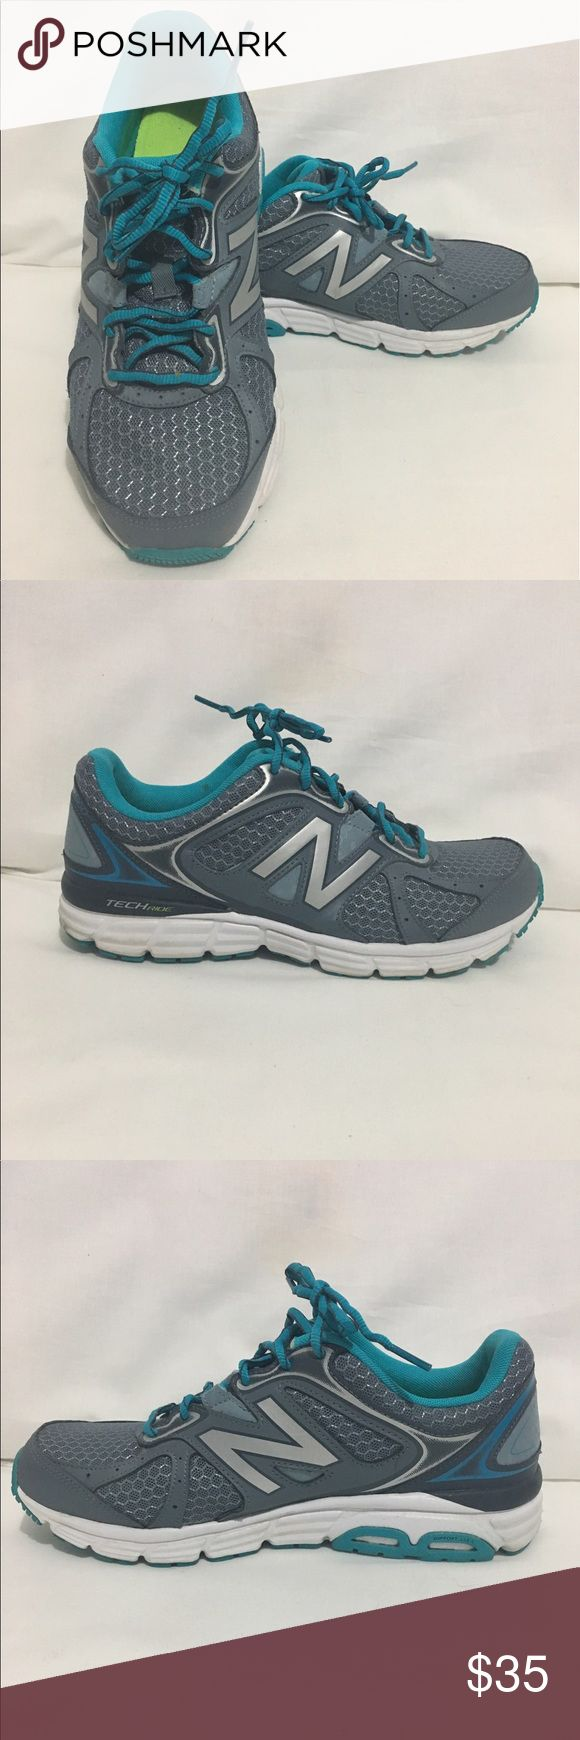 New Balance Women's Tennis Shoes Size 9.5 New Balance Tennis Shoes Gray, Silver and Blue Green, Barely Worn, show small signs of wear on soles, see photos for details New Balance Shoes Sneakers